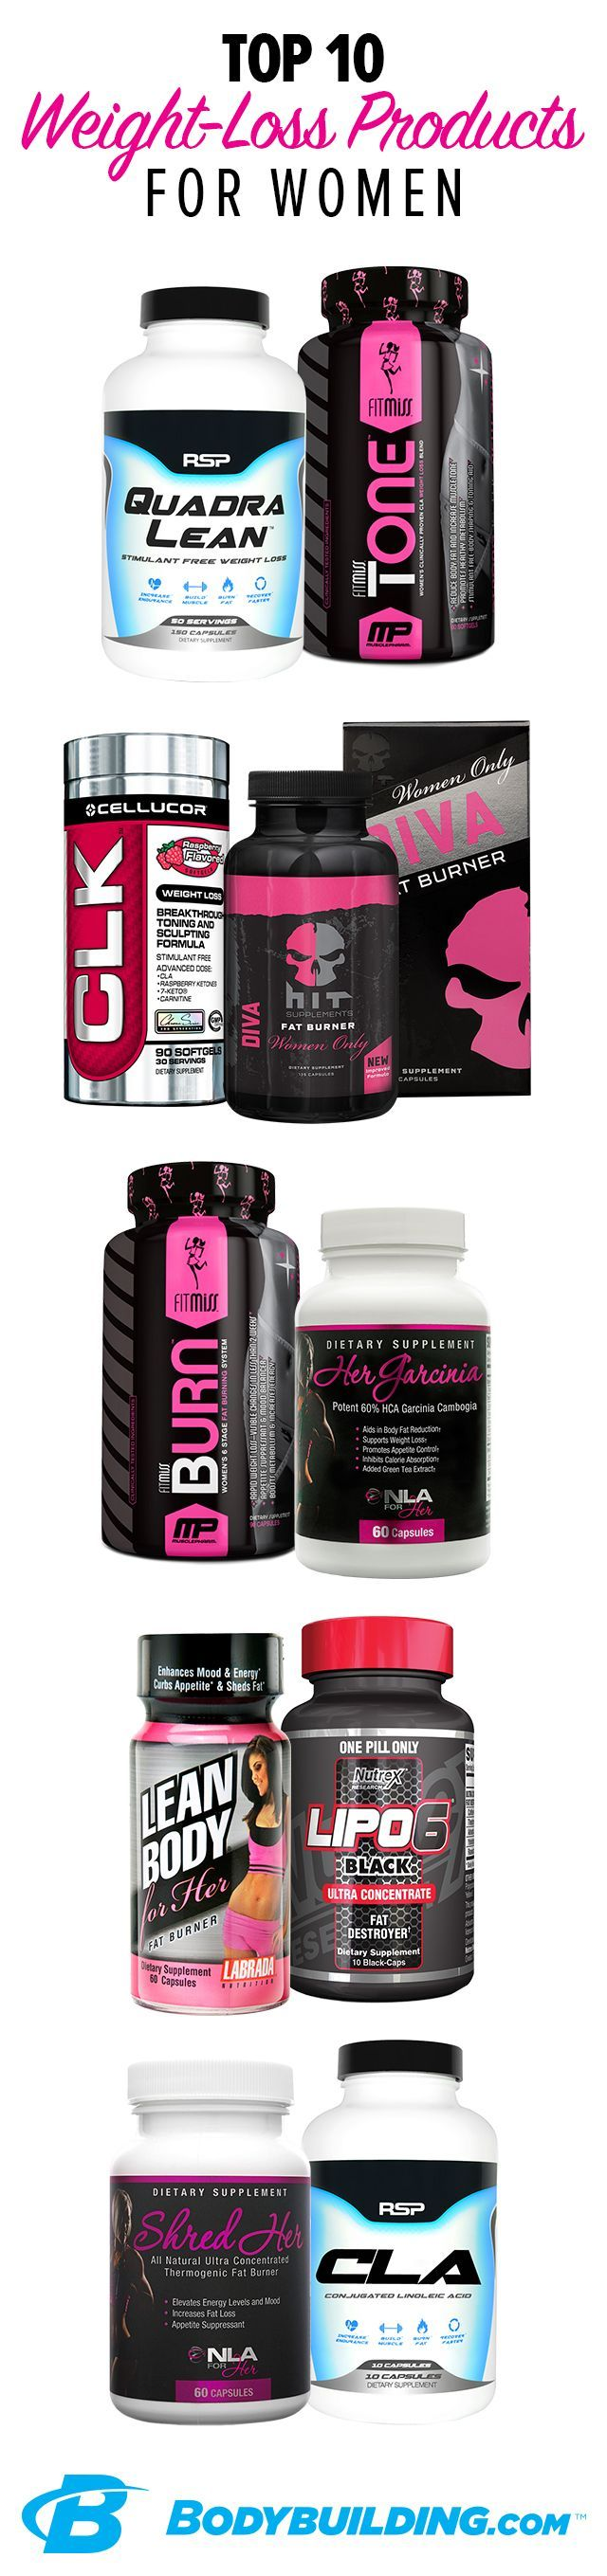 Ladies! There's 25% off Protein @ Bodybuilding {dot} com! Use my link below to get the discount, PLUS Buy 2 FitMiss Tyte Supps and get 1 FREE! I love a good sale! http://bodybuilding.7eer.net/c/262805/77751/2023